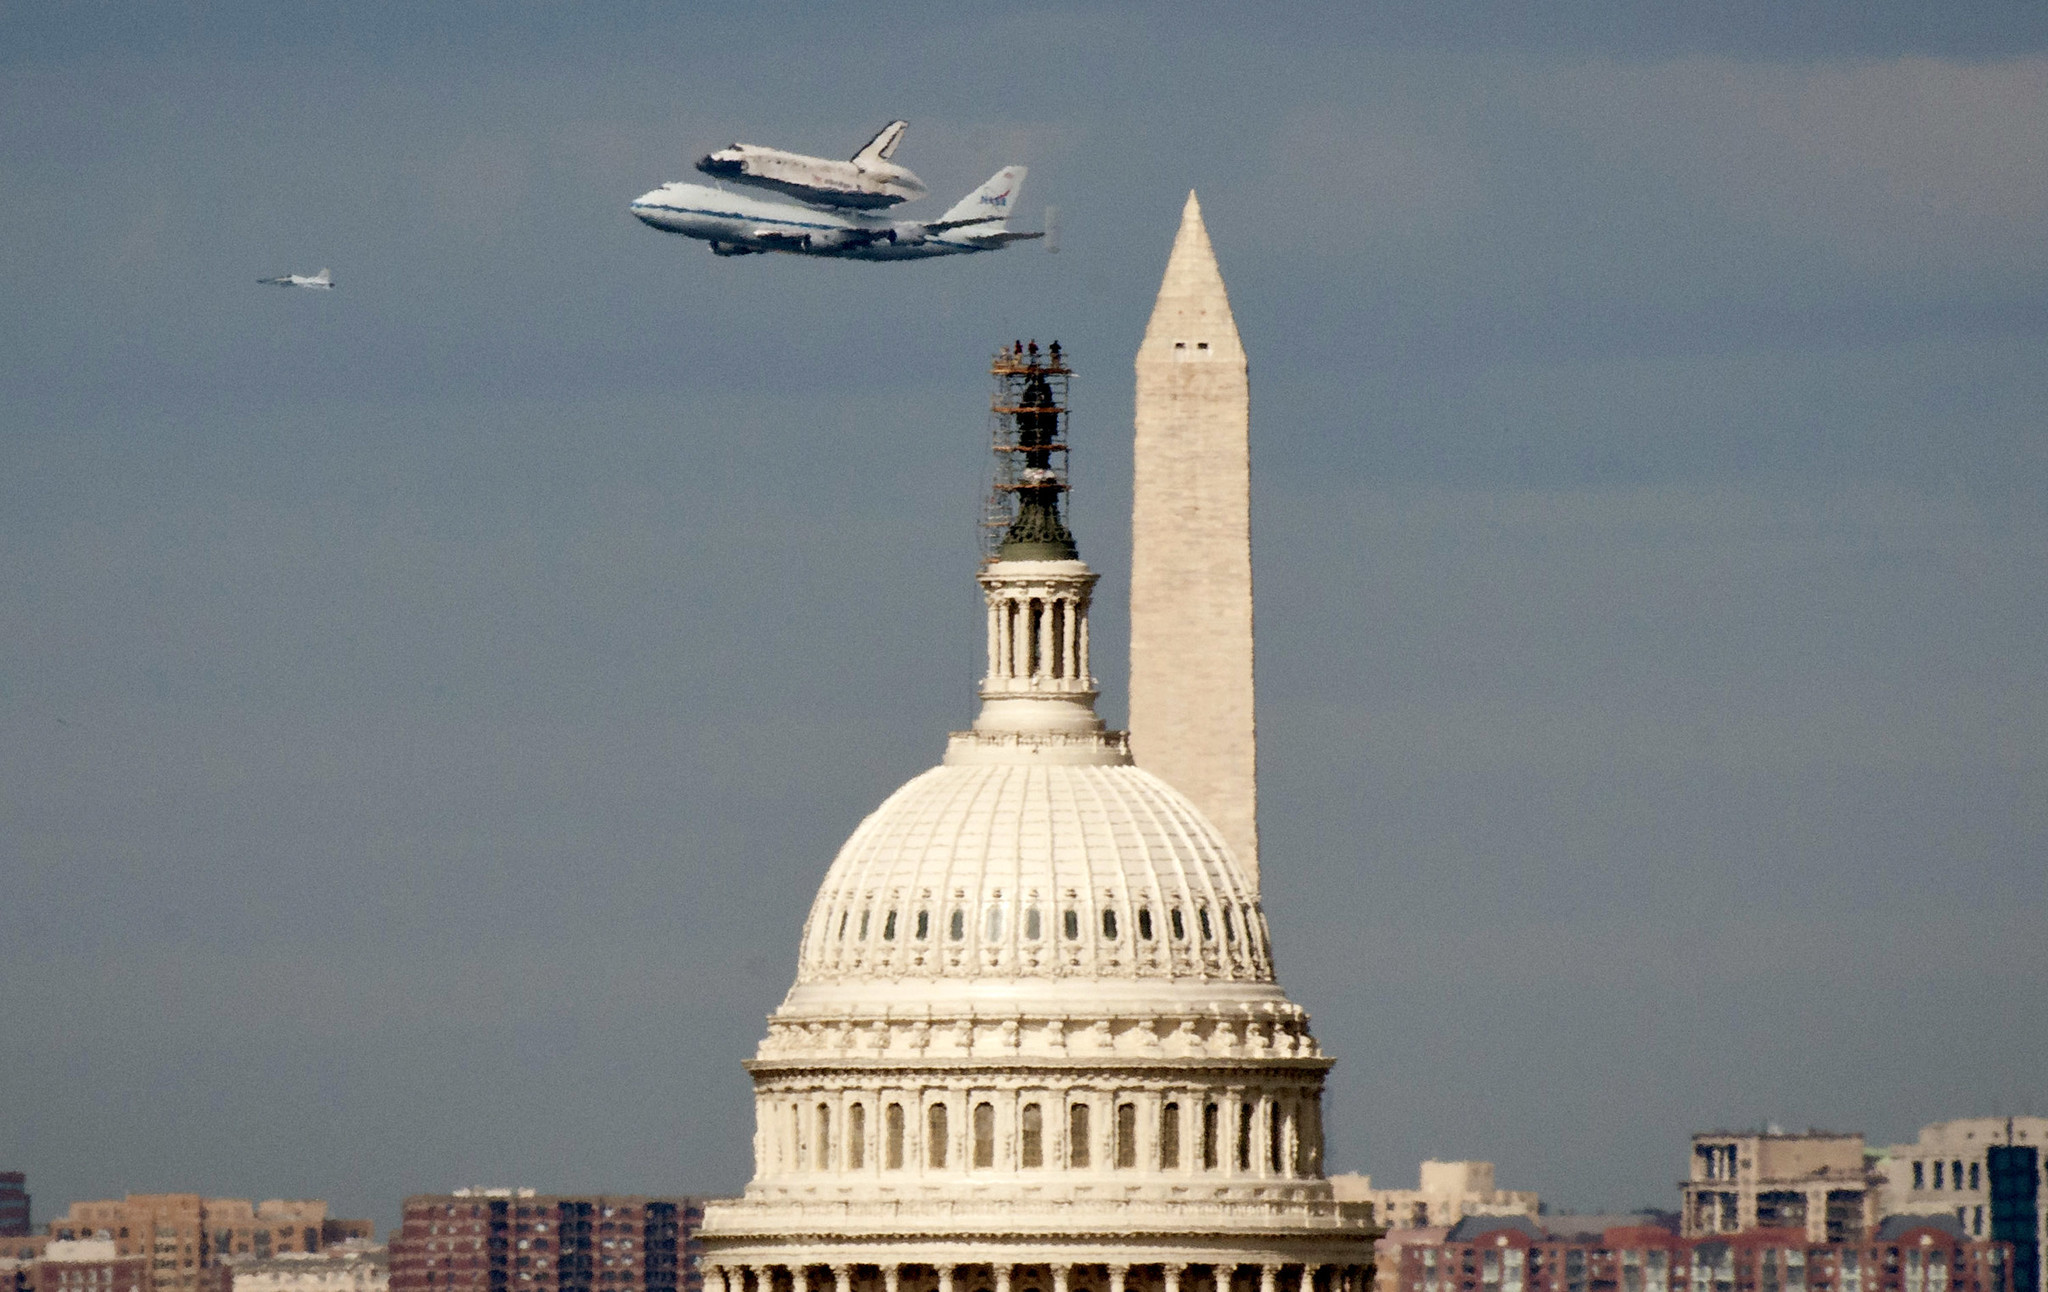 Federal workers to get 12 weeks paid family leave in tentative deal to create Space Force